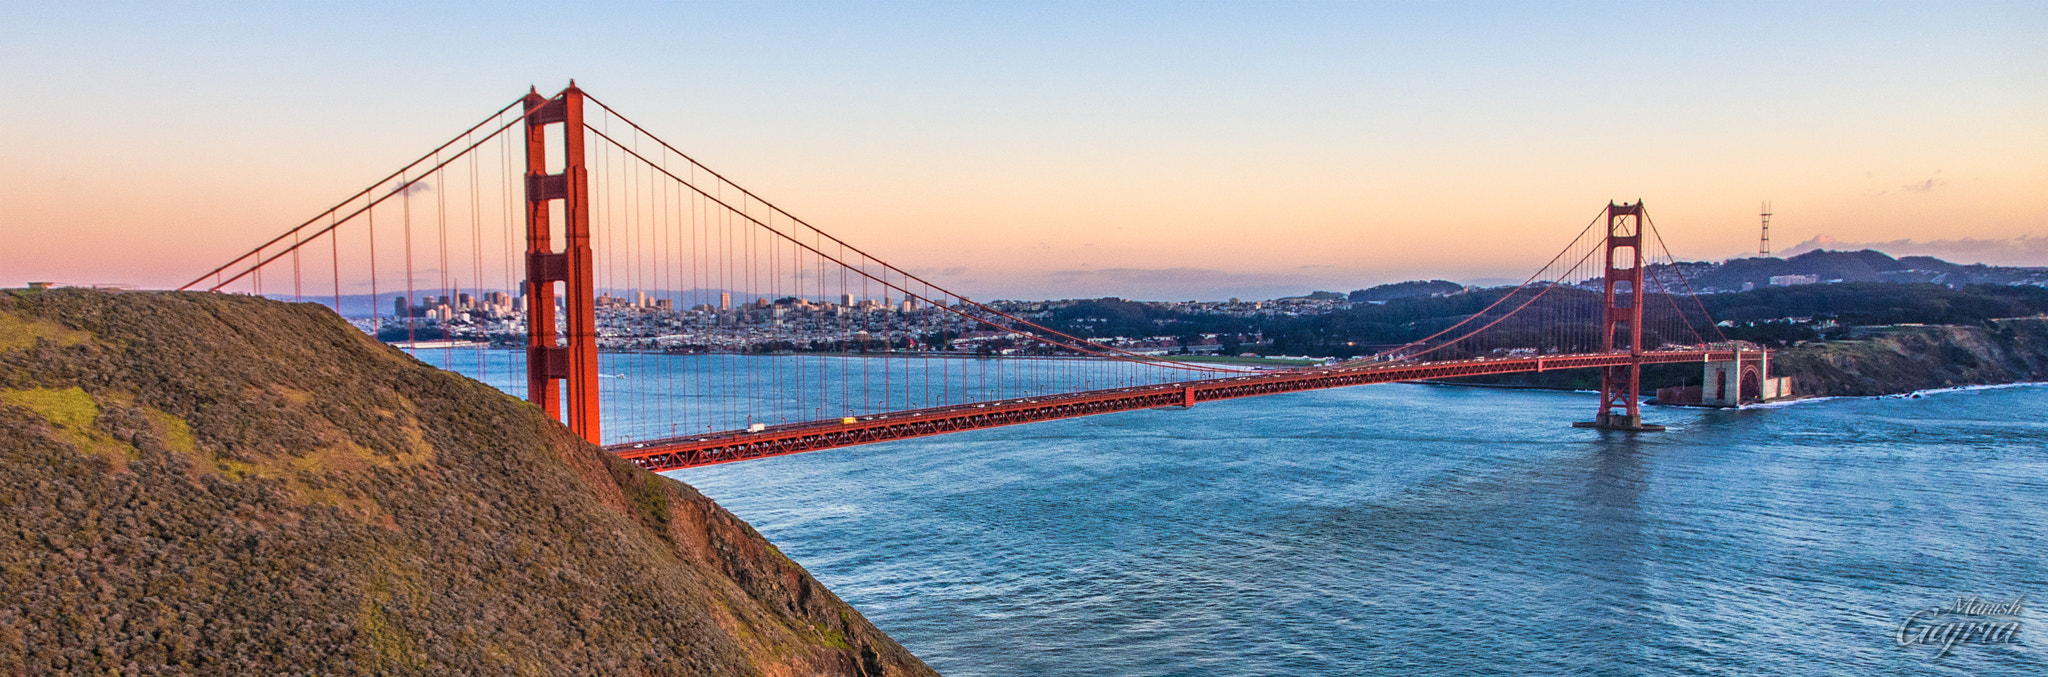 Photograph Golden Gate at the Golden Hour by Manish Gajria on 500px